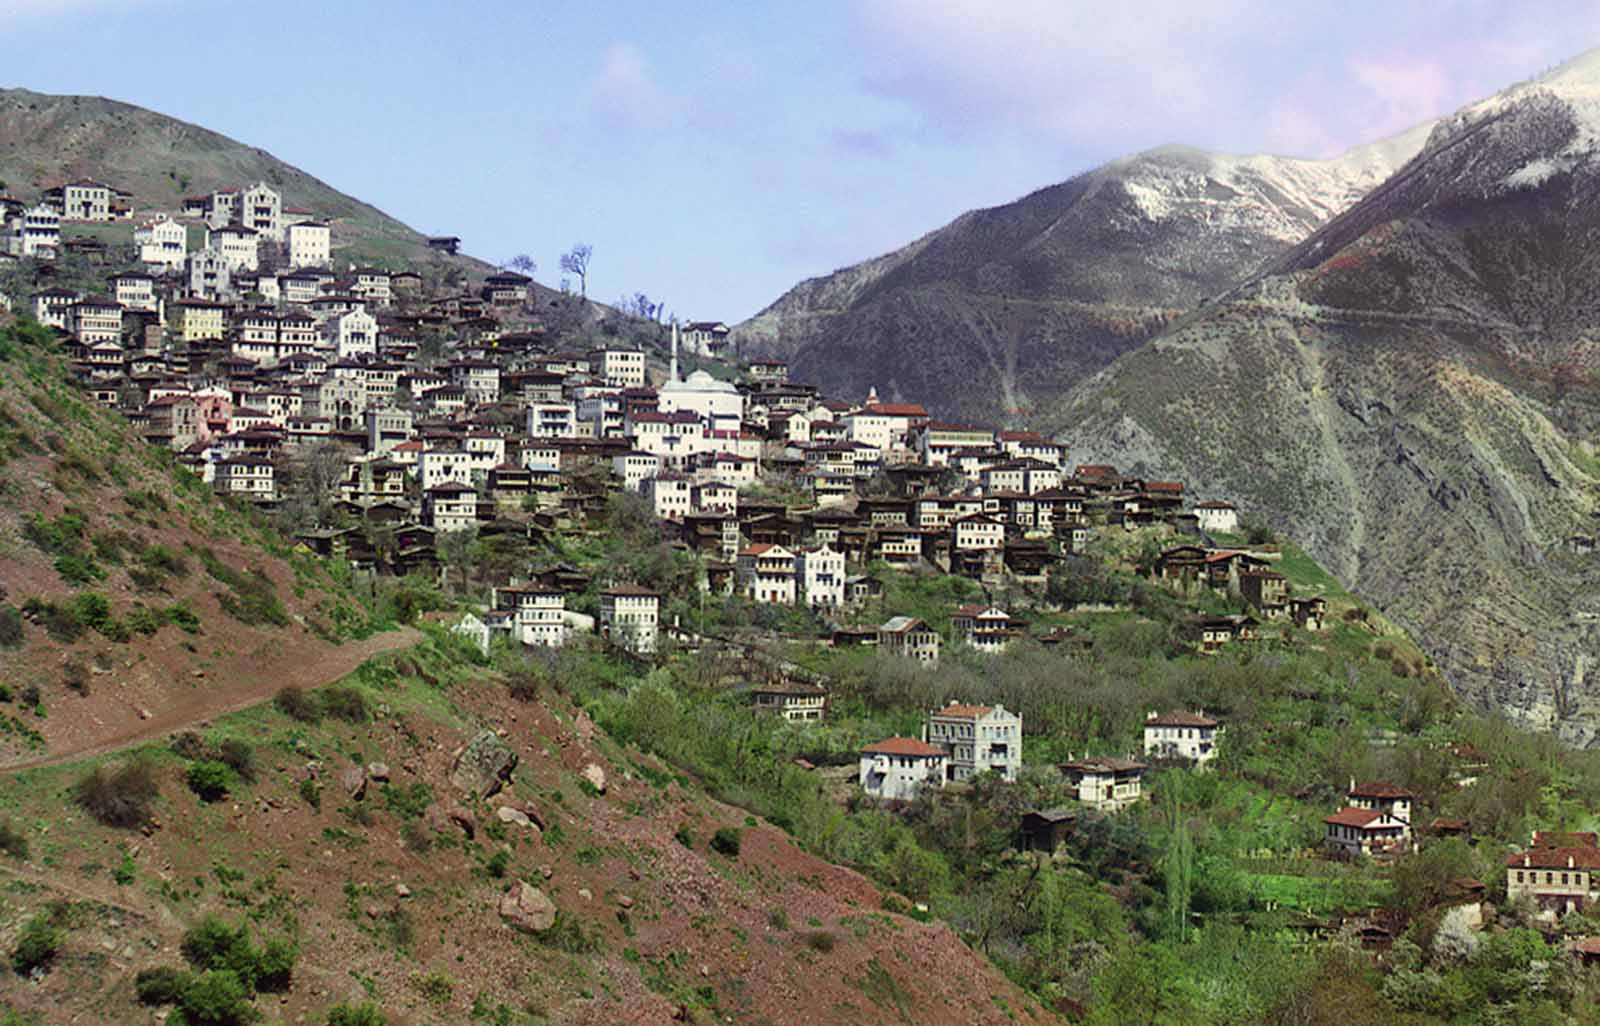 General view of Artvin (now in Turkey) from the small town of Svet, 1910.